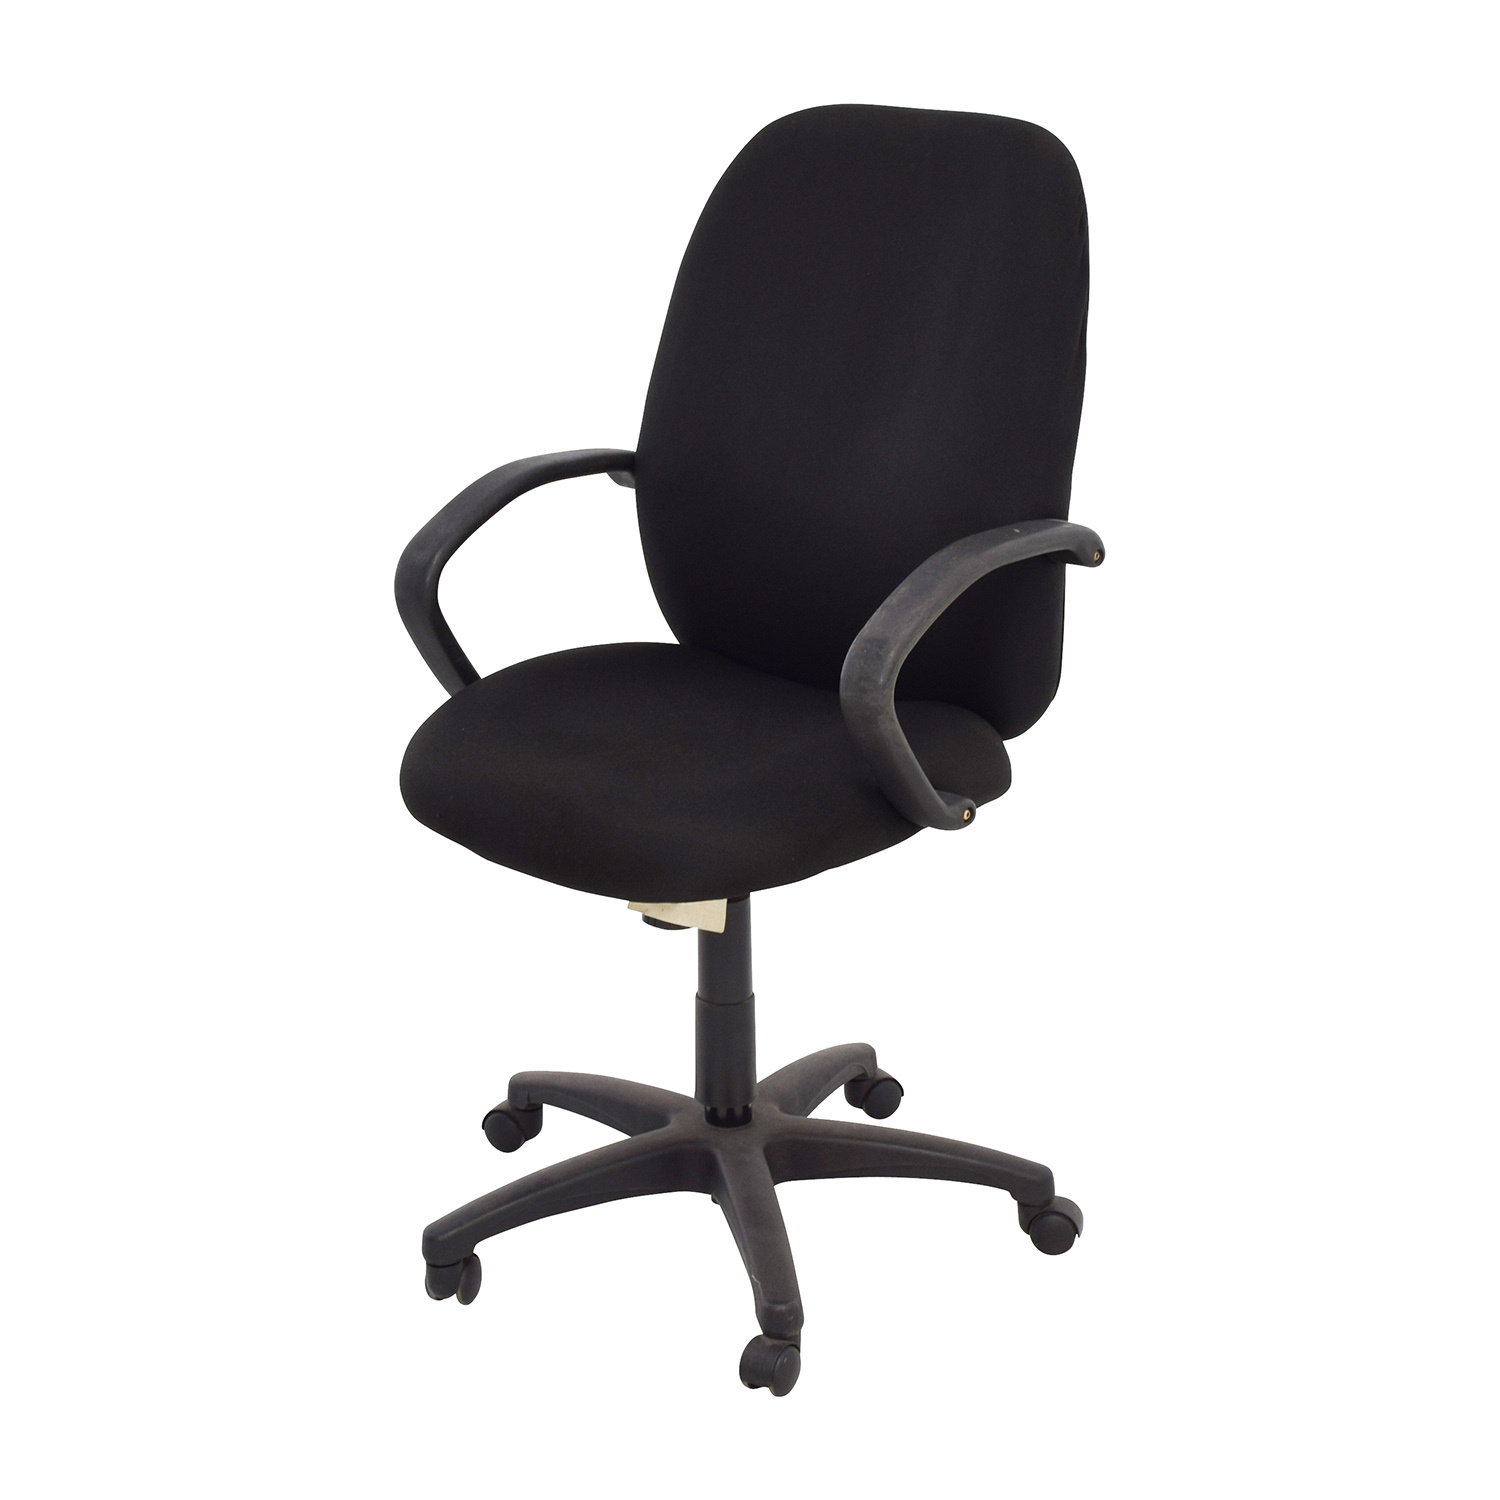 office chair with adjustable arms extra tall high 80% off - black swivel / chairs